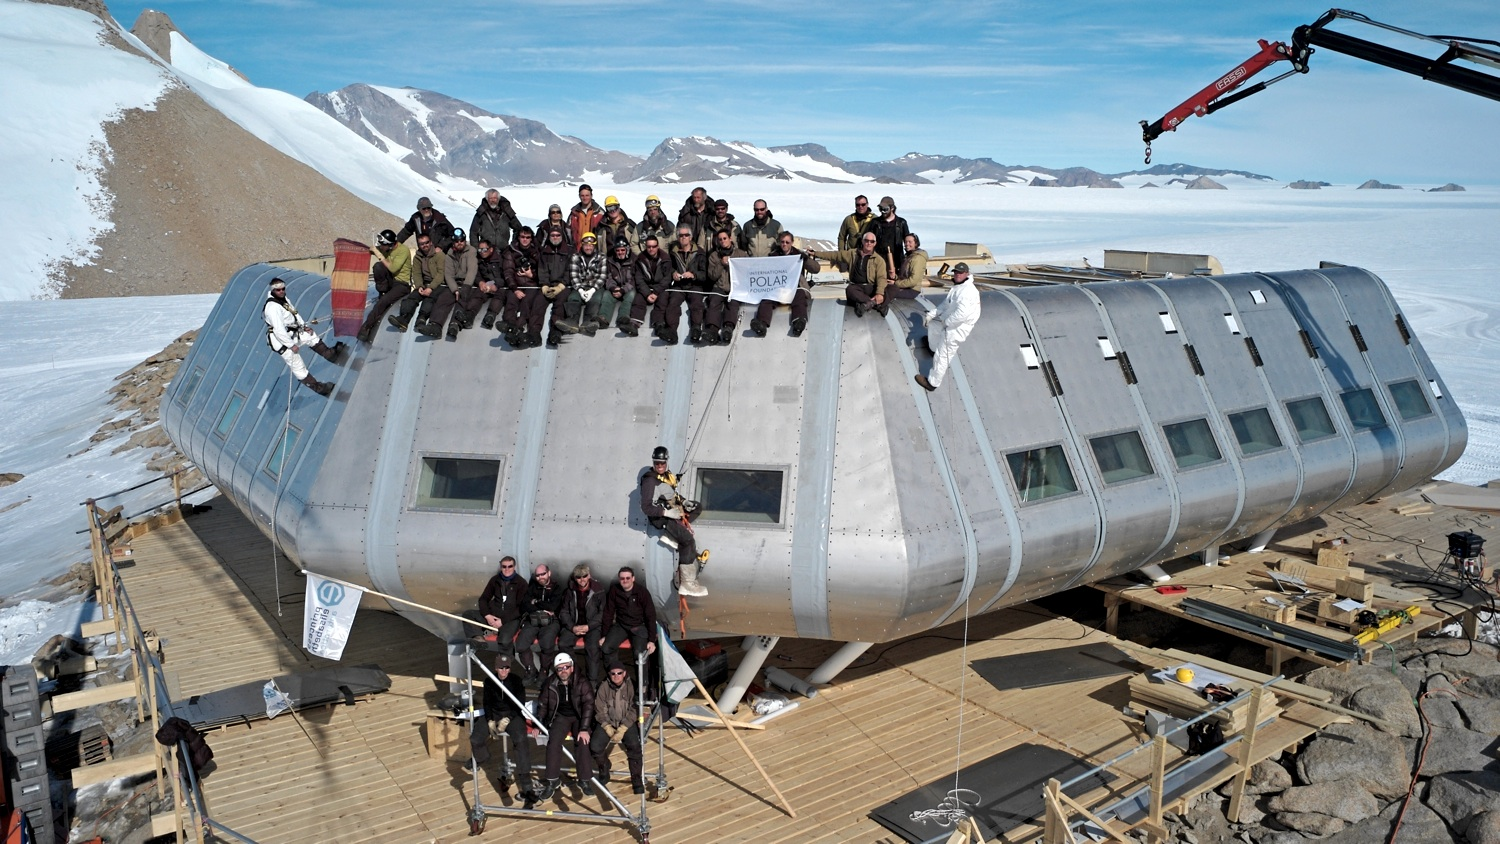 News from Antarctica